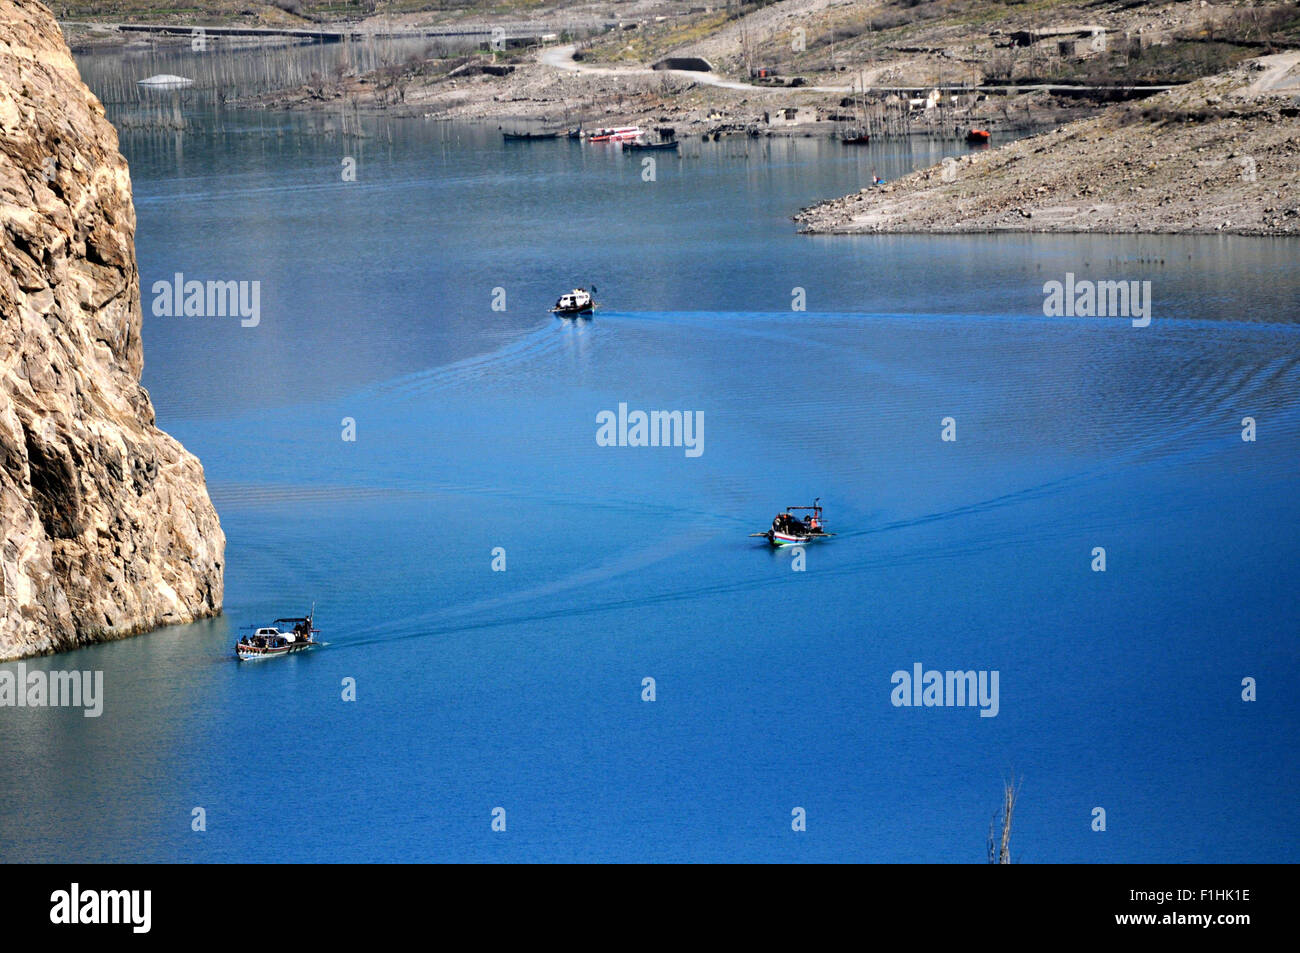 Attabad. 2nd Sep, 2015. Photo taken on Sept. 2, 2015 shows the scenery of Attabad Lake in northern Pakistan's - Stock Image